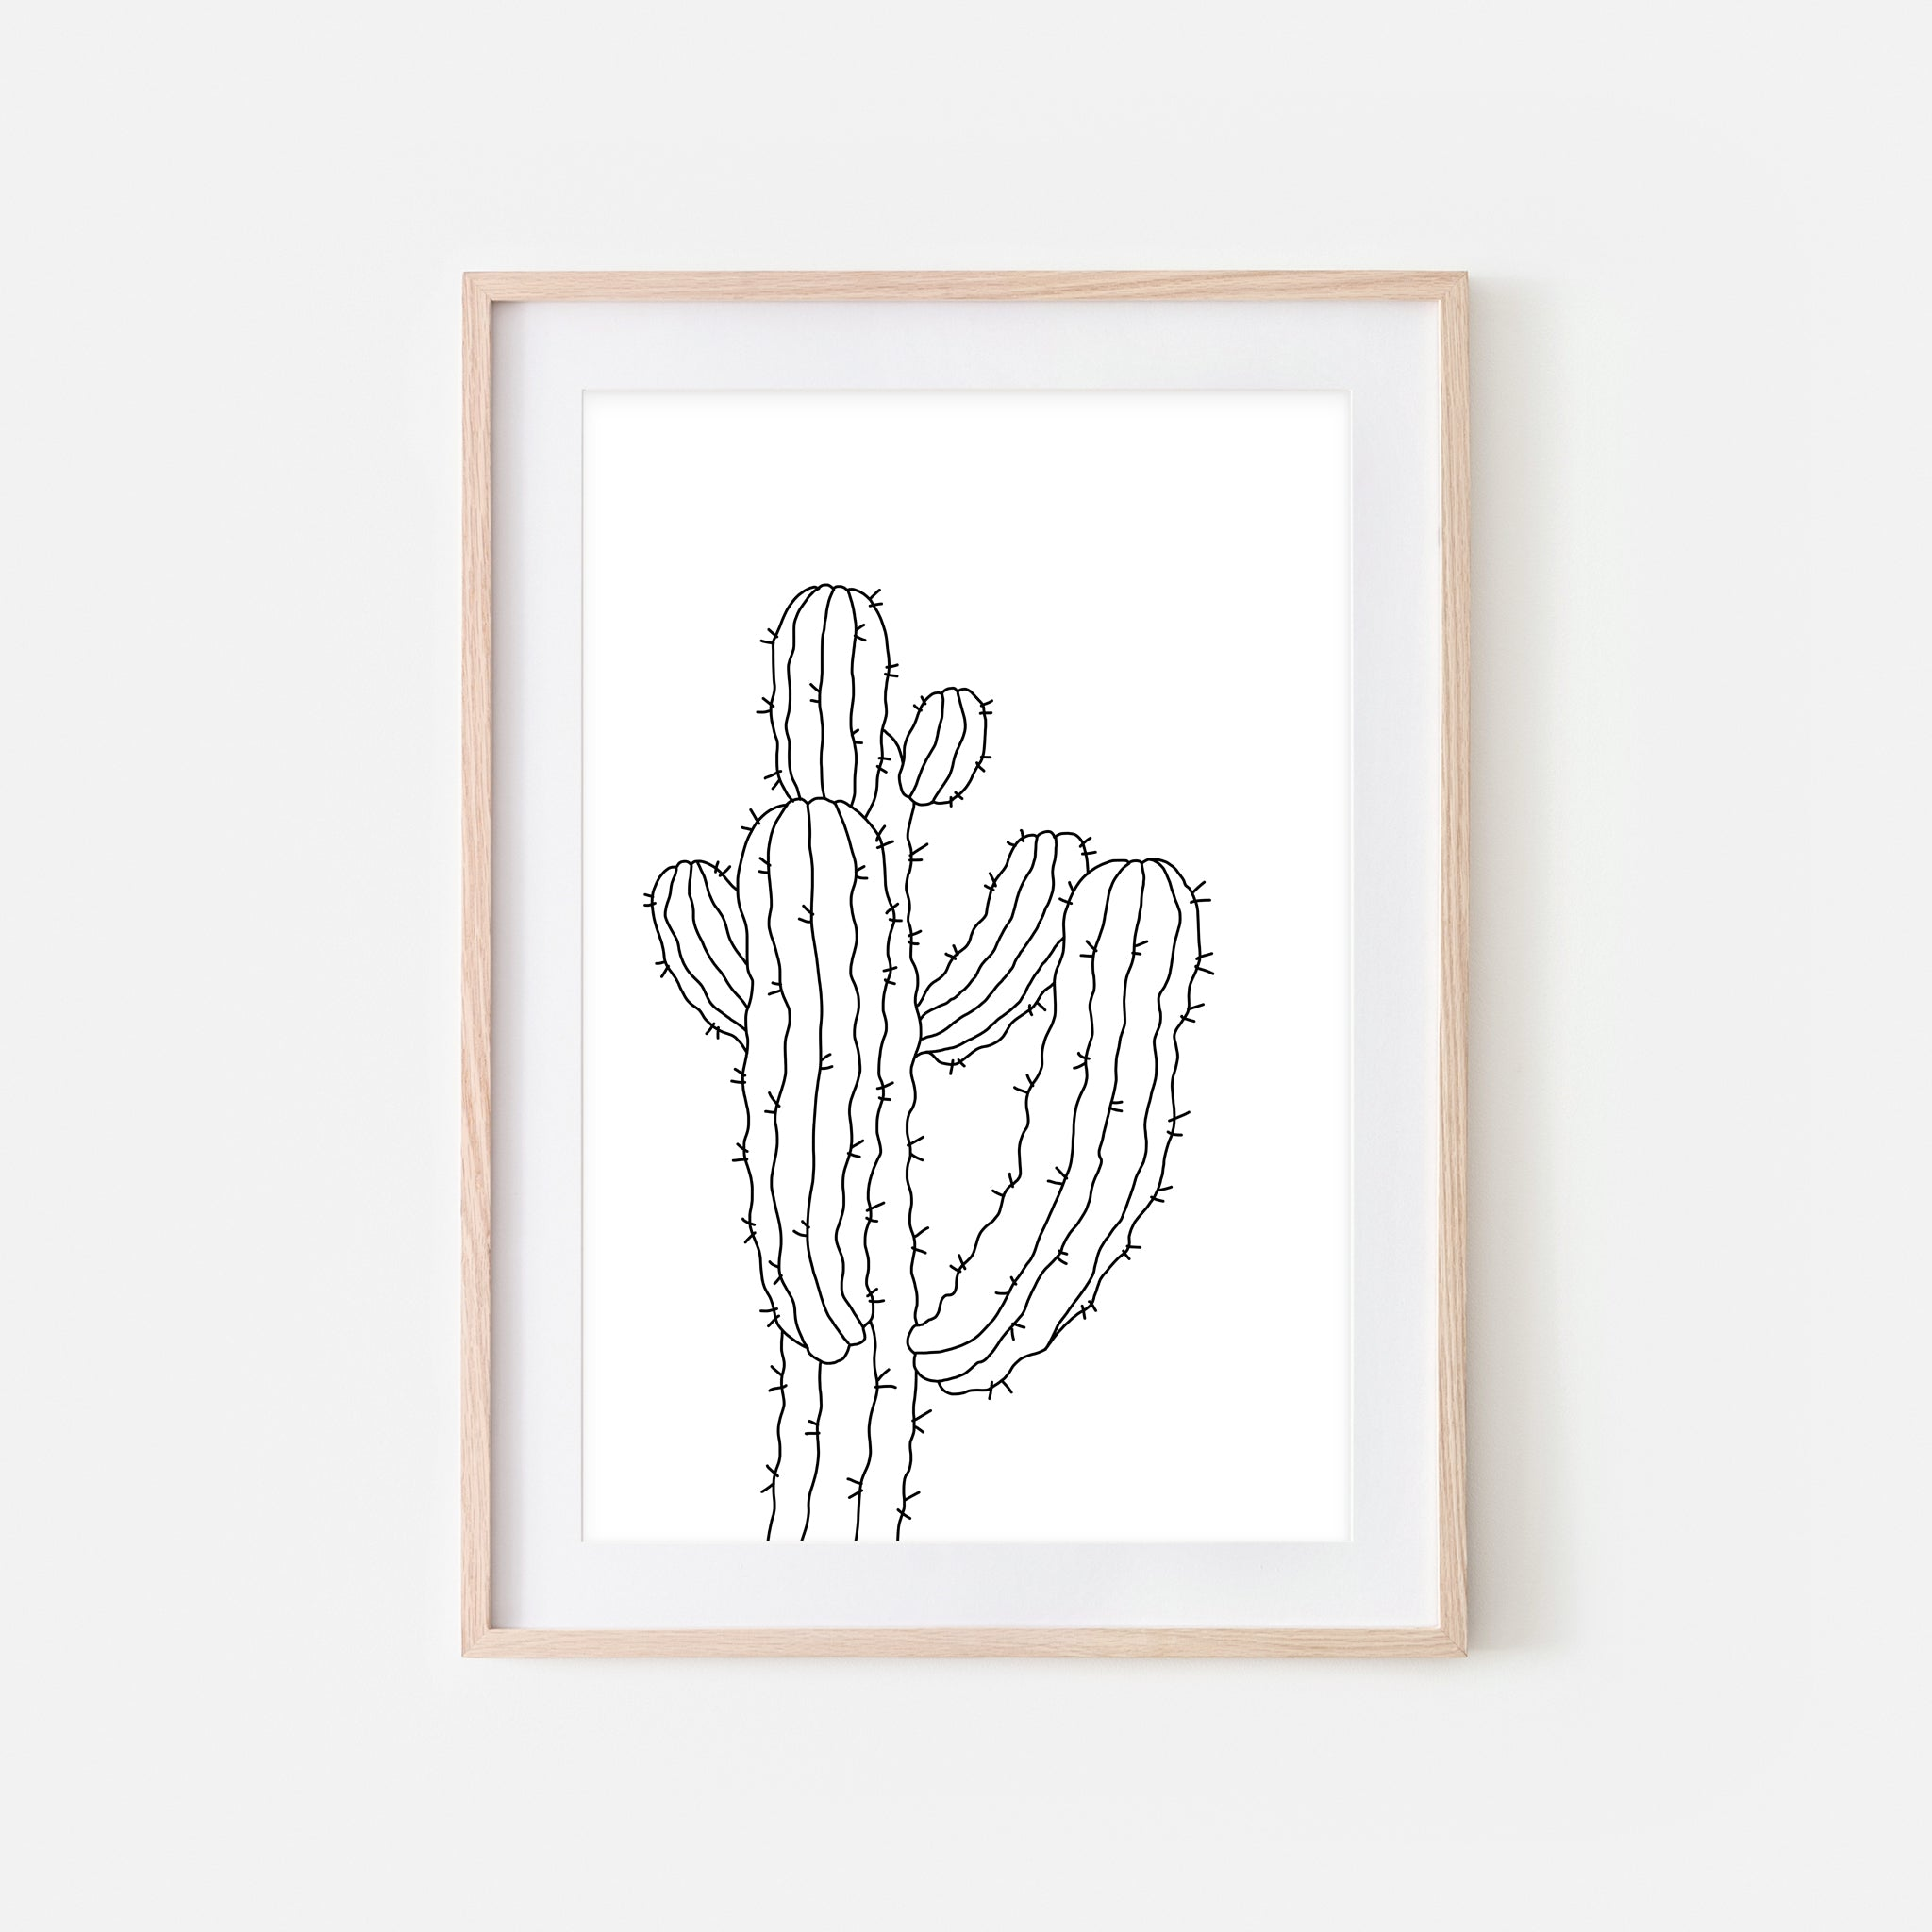 Botanical No. 17 Wall Art - Minimalist Cactus Line Drawing - Black and White Print, Poster or Printable Download